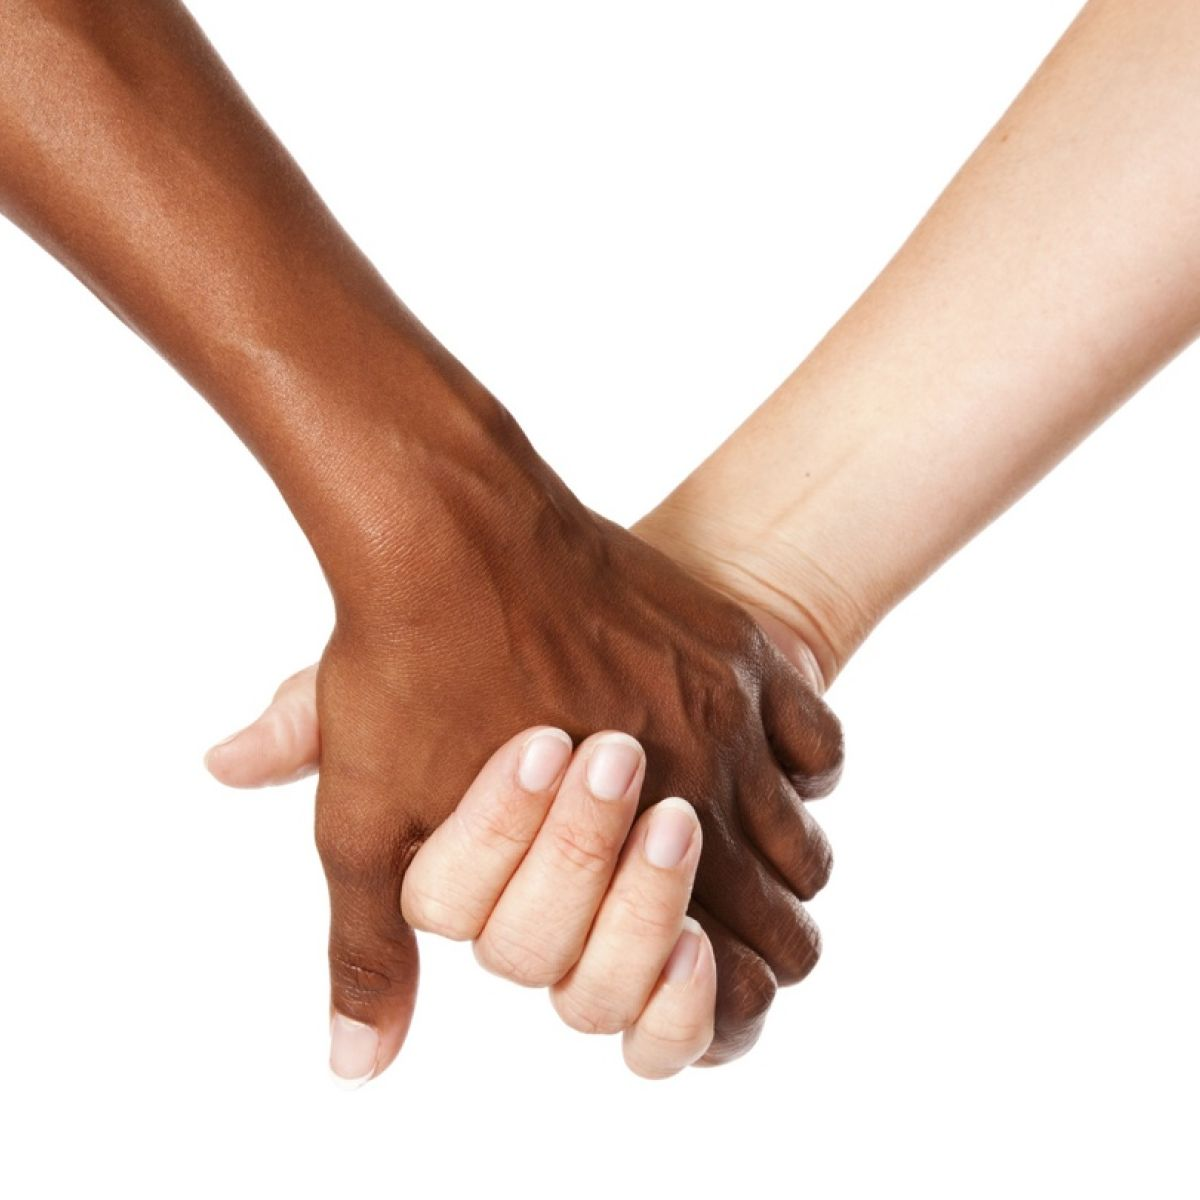 Interracial dating: ireland - Reddit